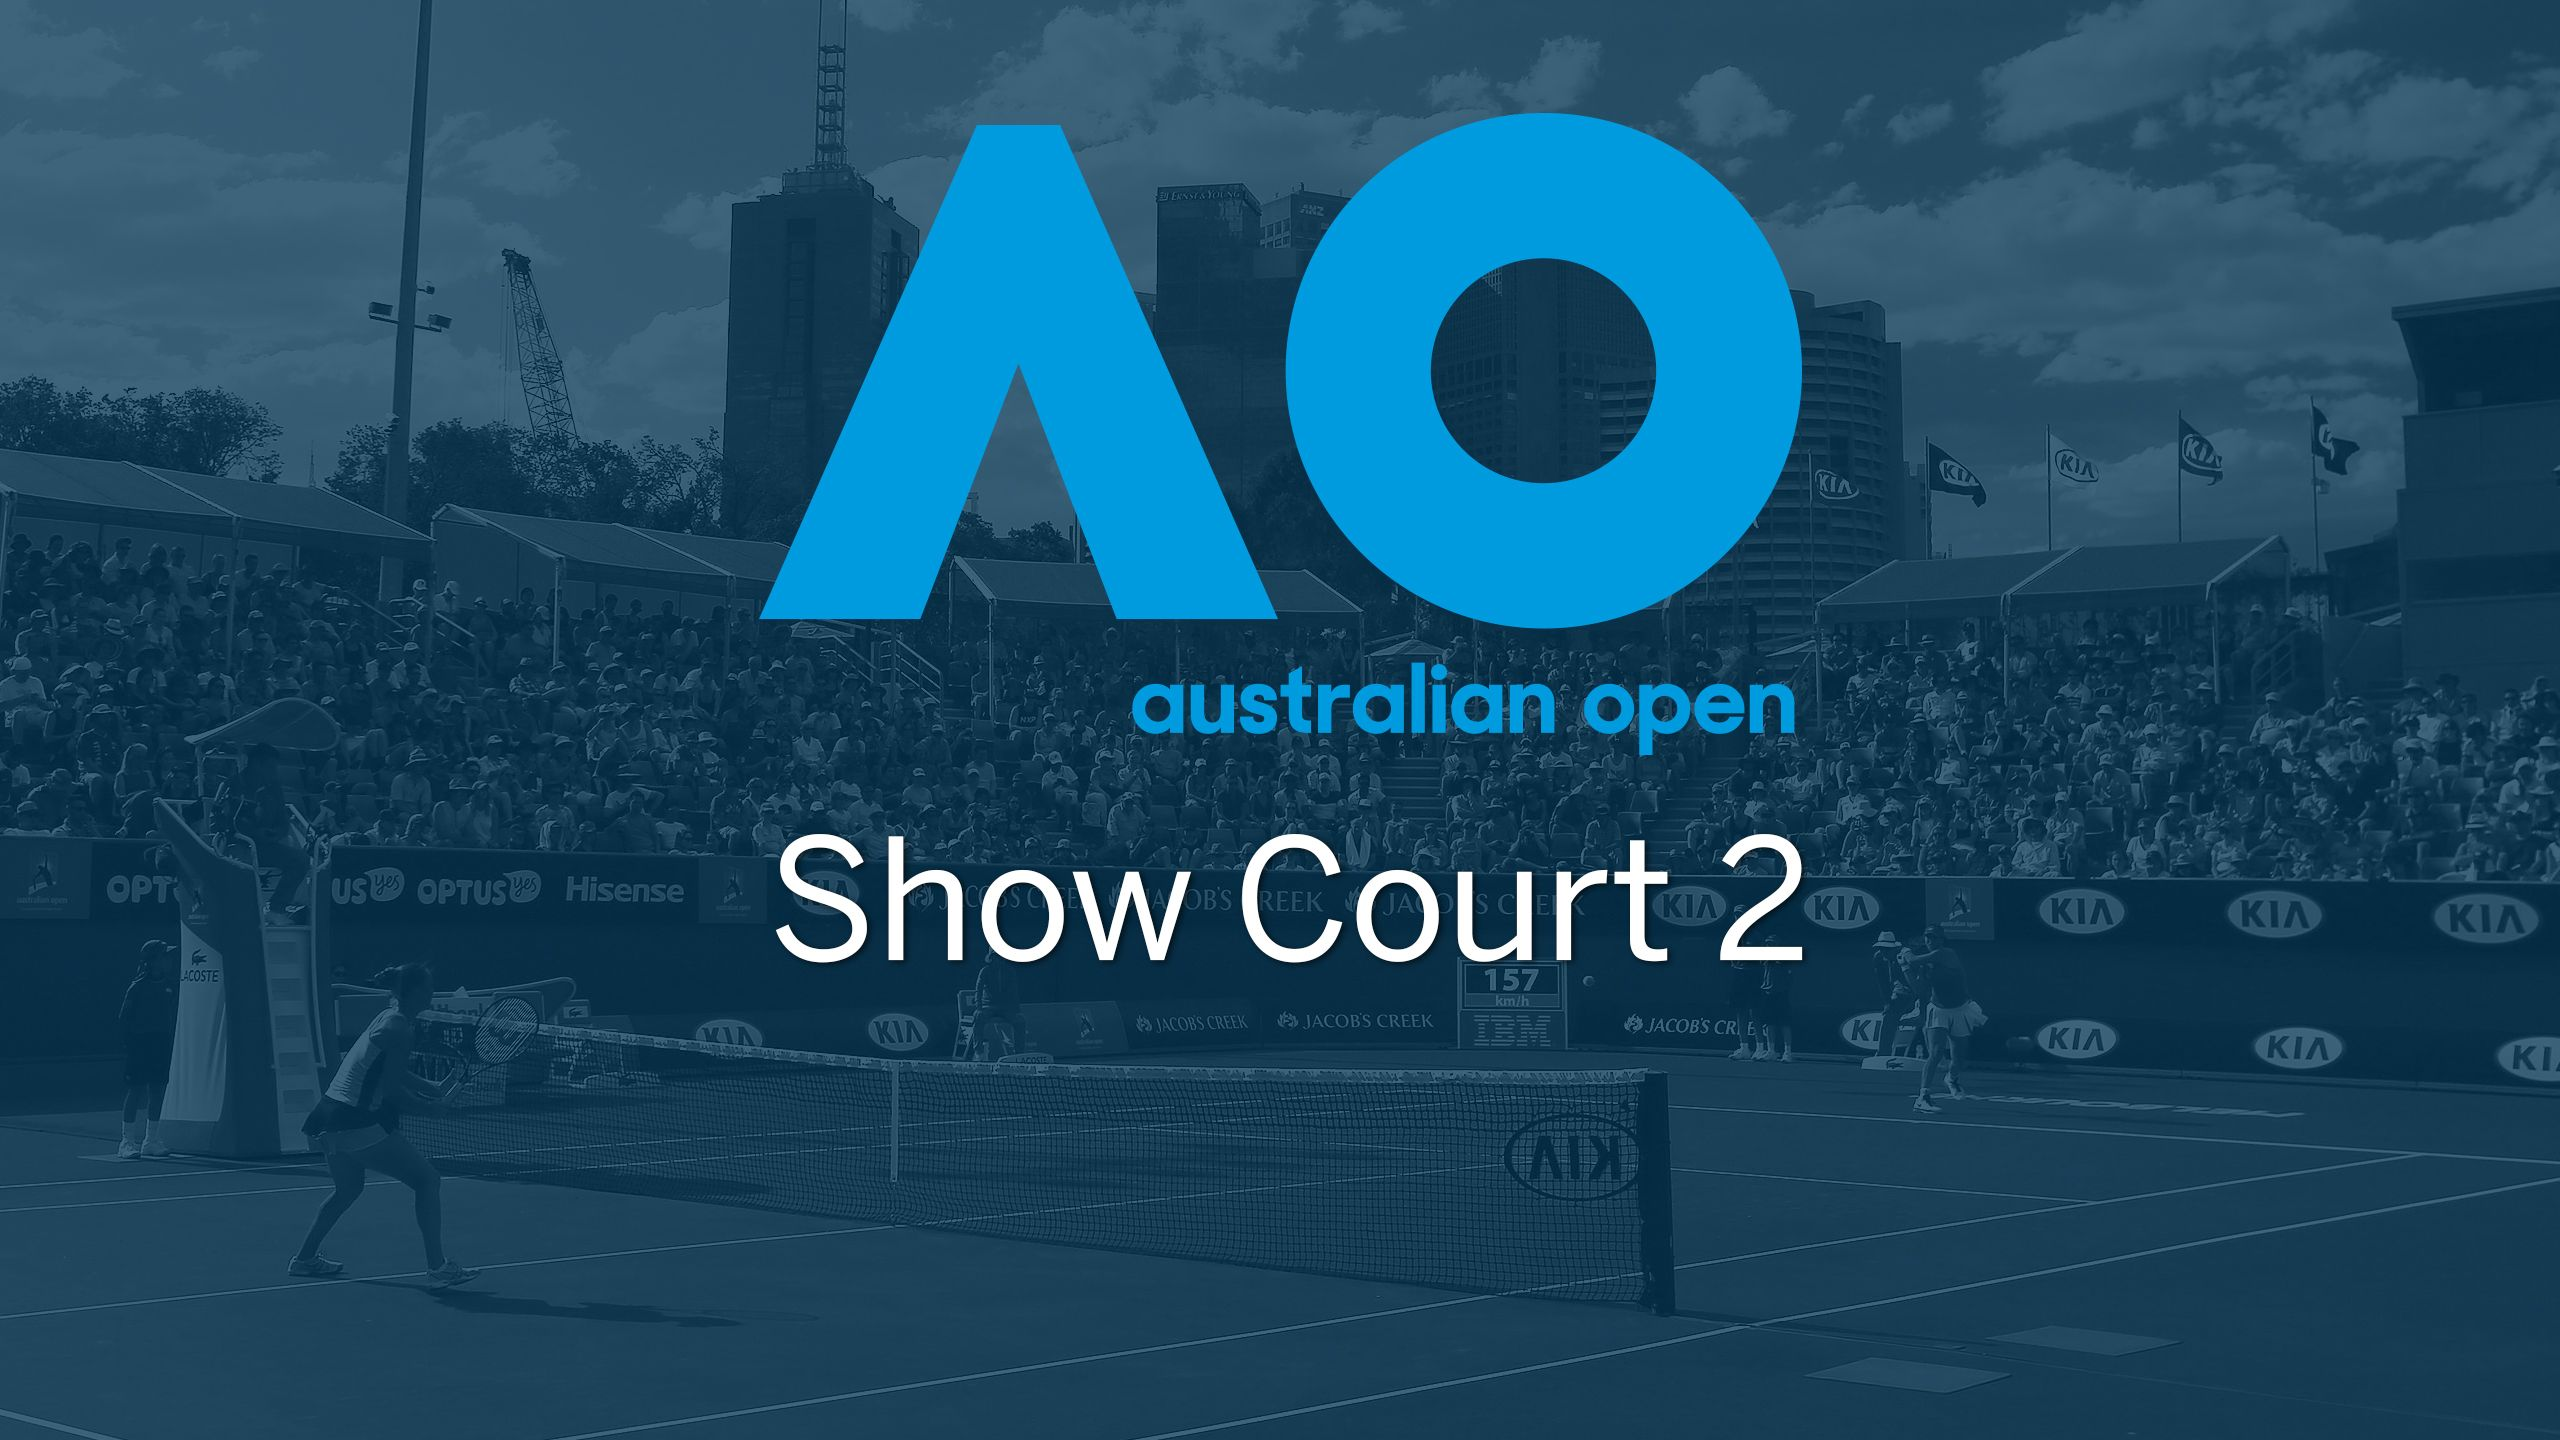 (3) Makarova/Soares vs. Stosur/Groth (Mixed Doubles Second Round)